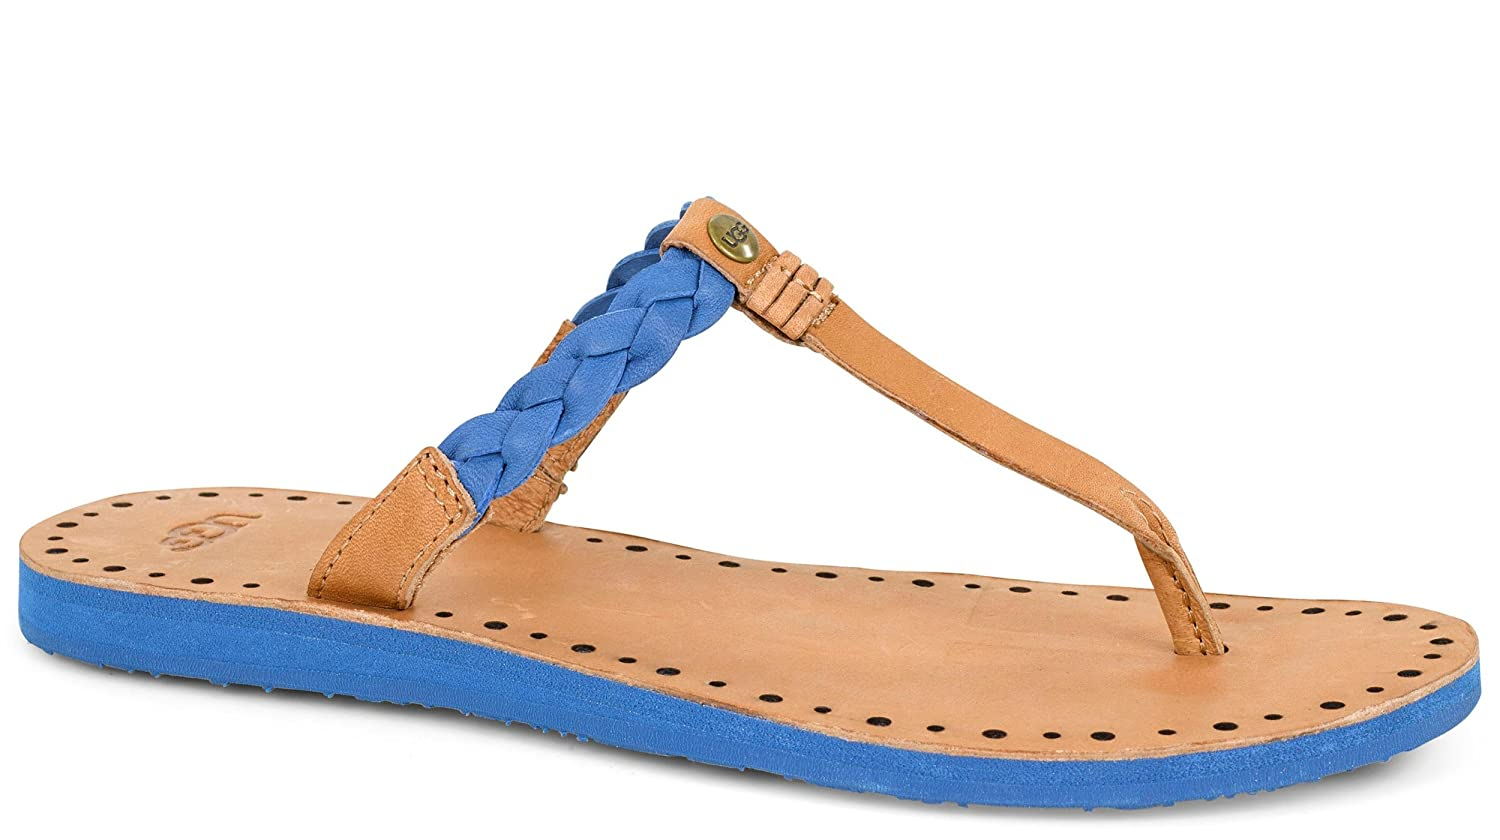 Womens Sandals UGG Bria Marine Blue Leather